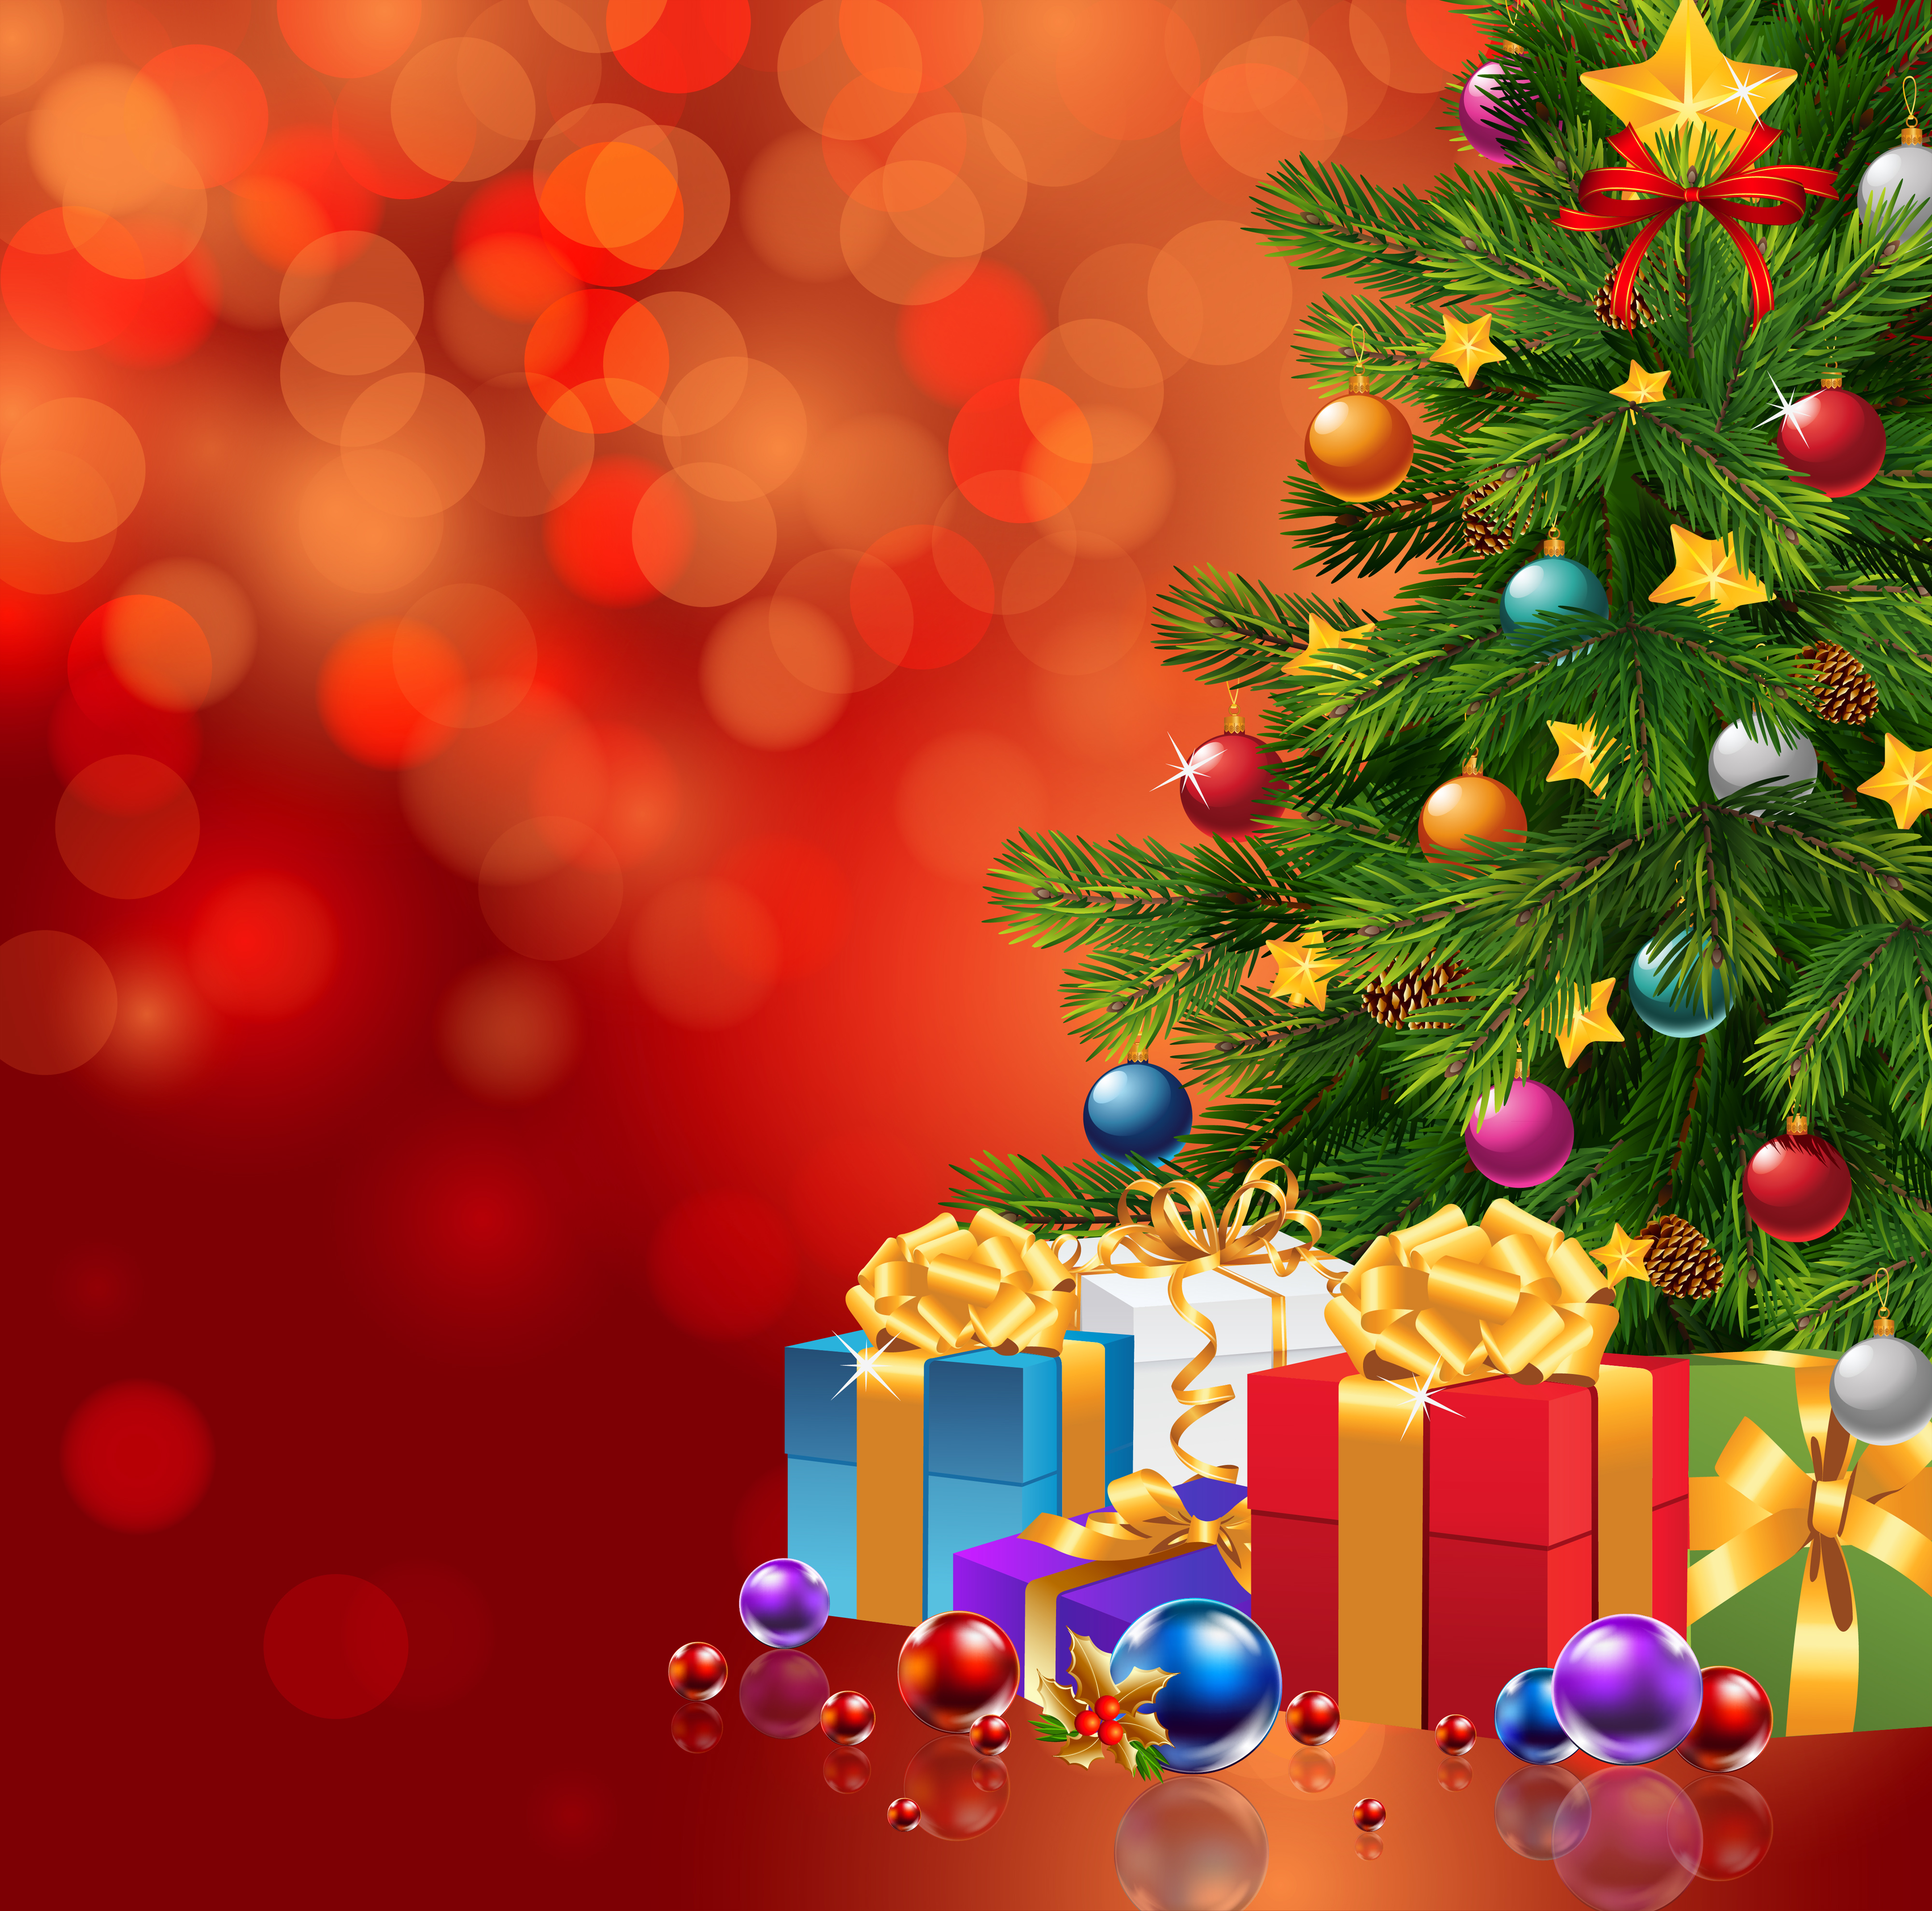 Cute Wallpapers Gold White Red Christmas Background With Xmas Tree And Gifts